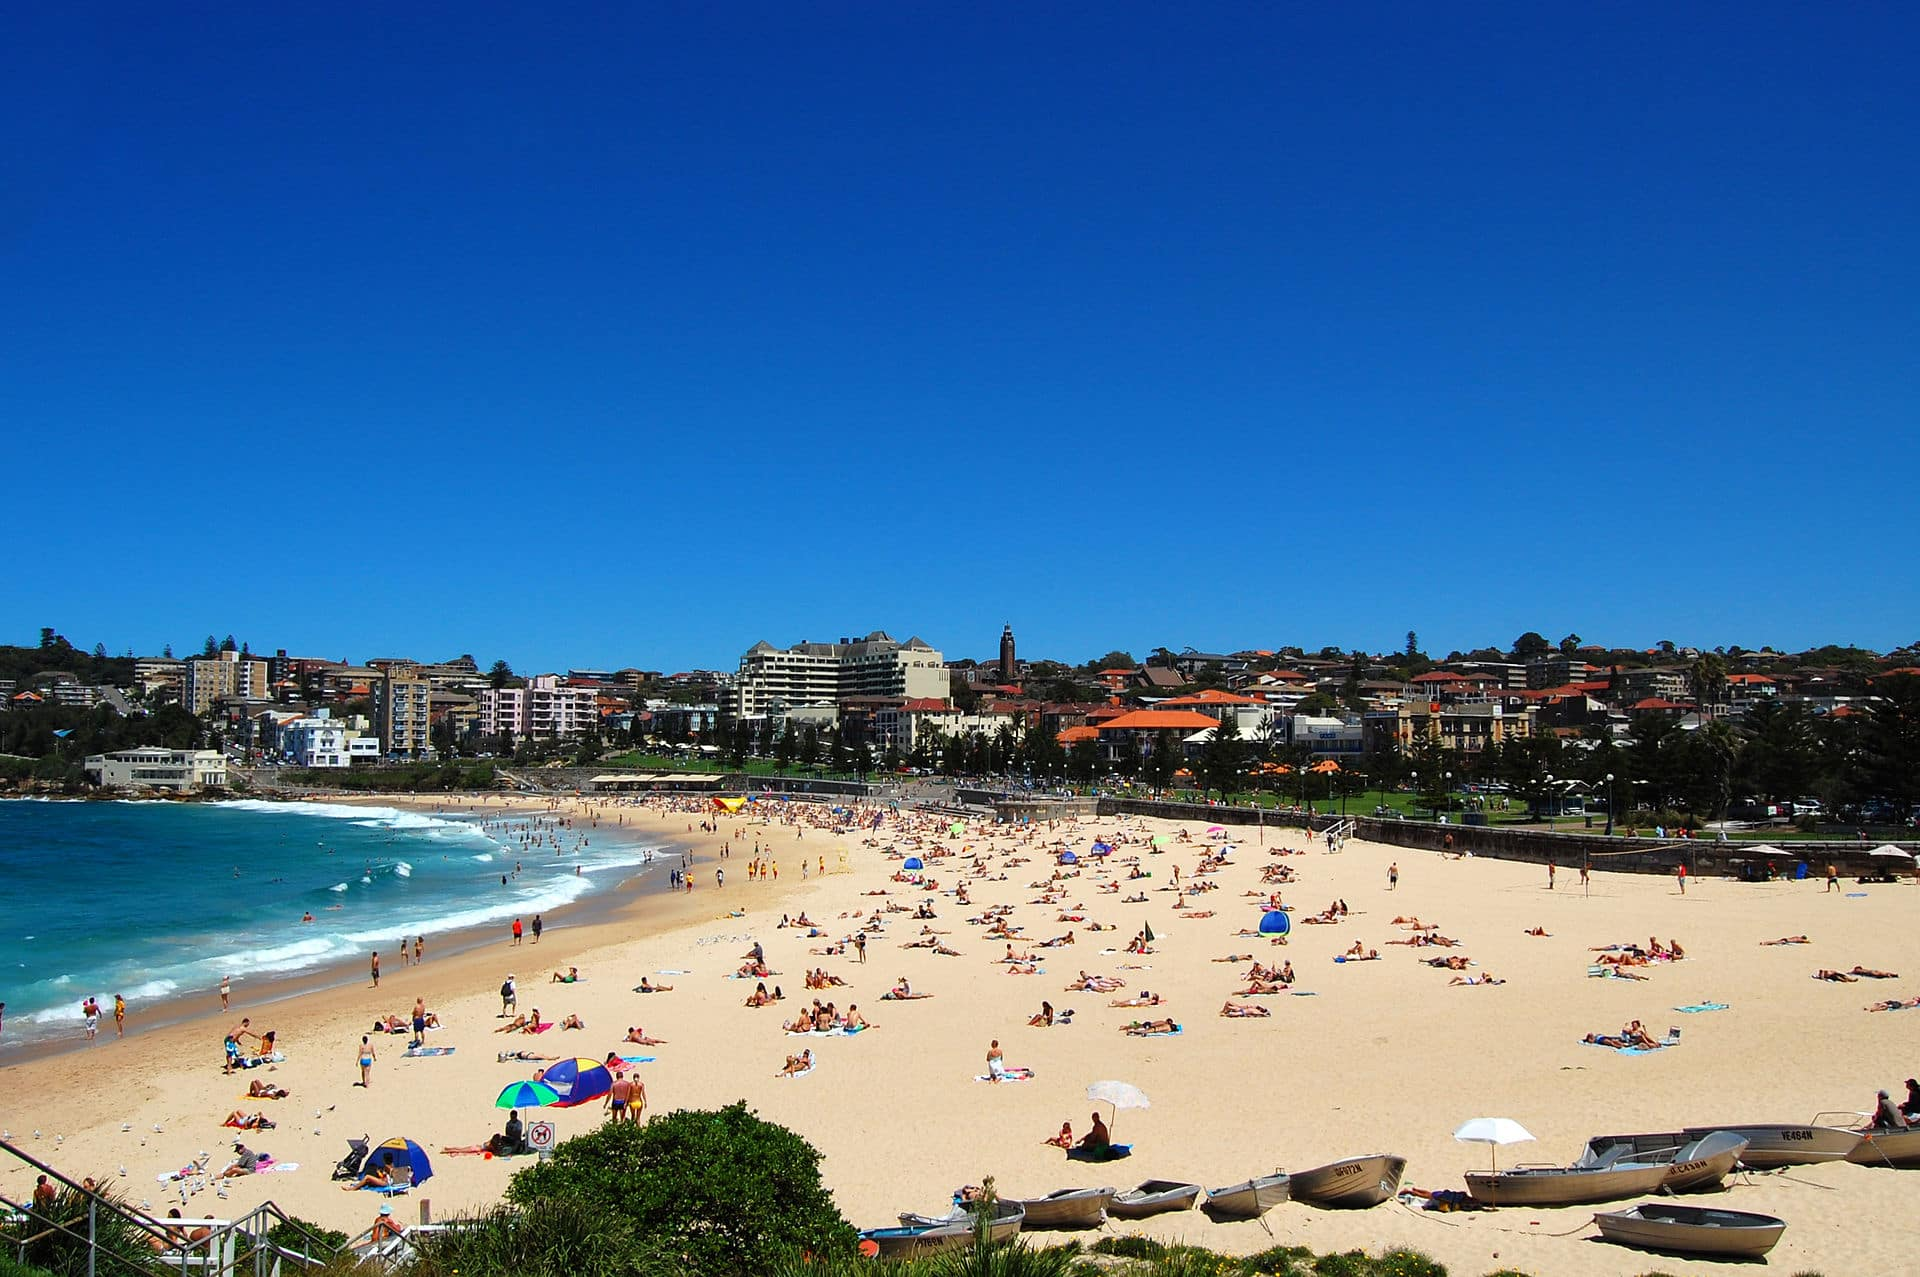 Coogee Beach, view from Dolphin Point at the northern end